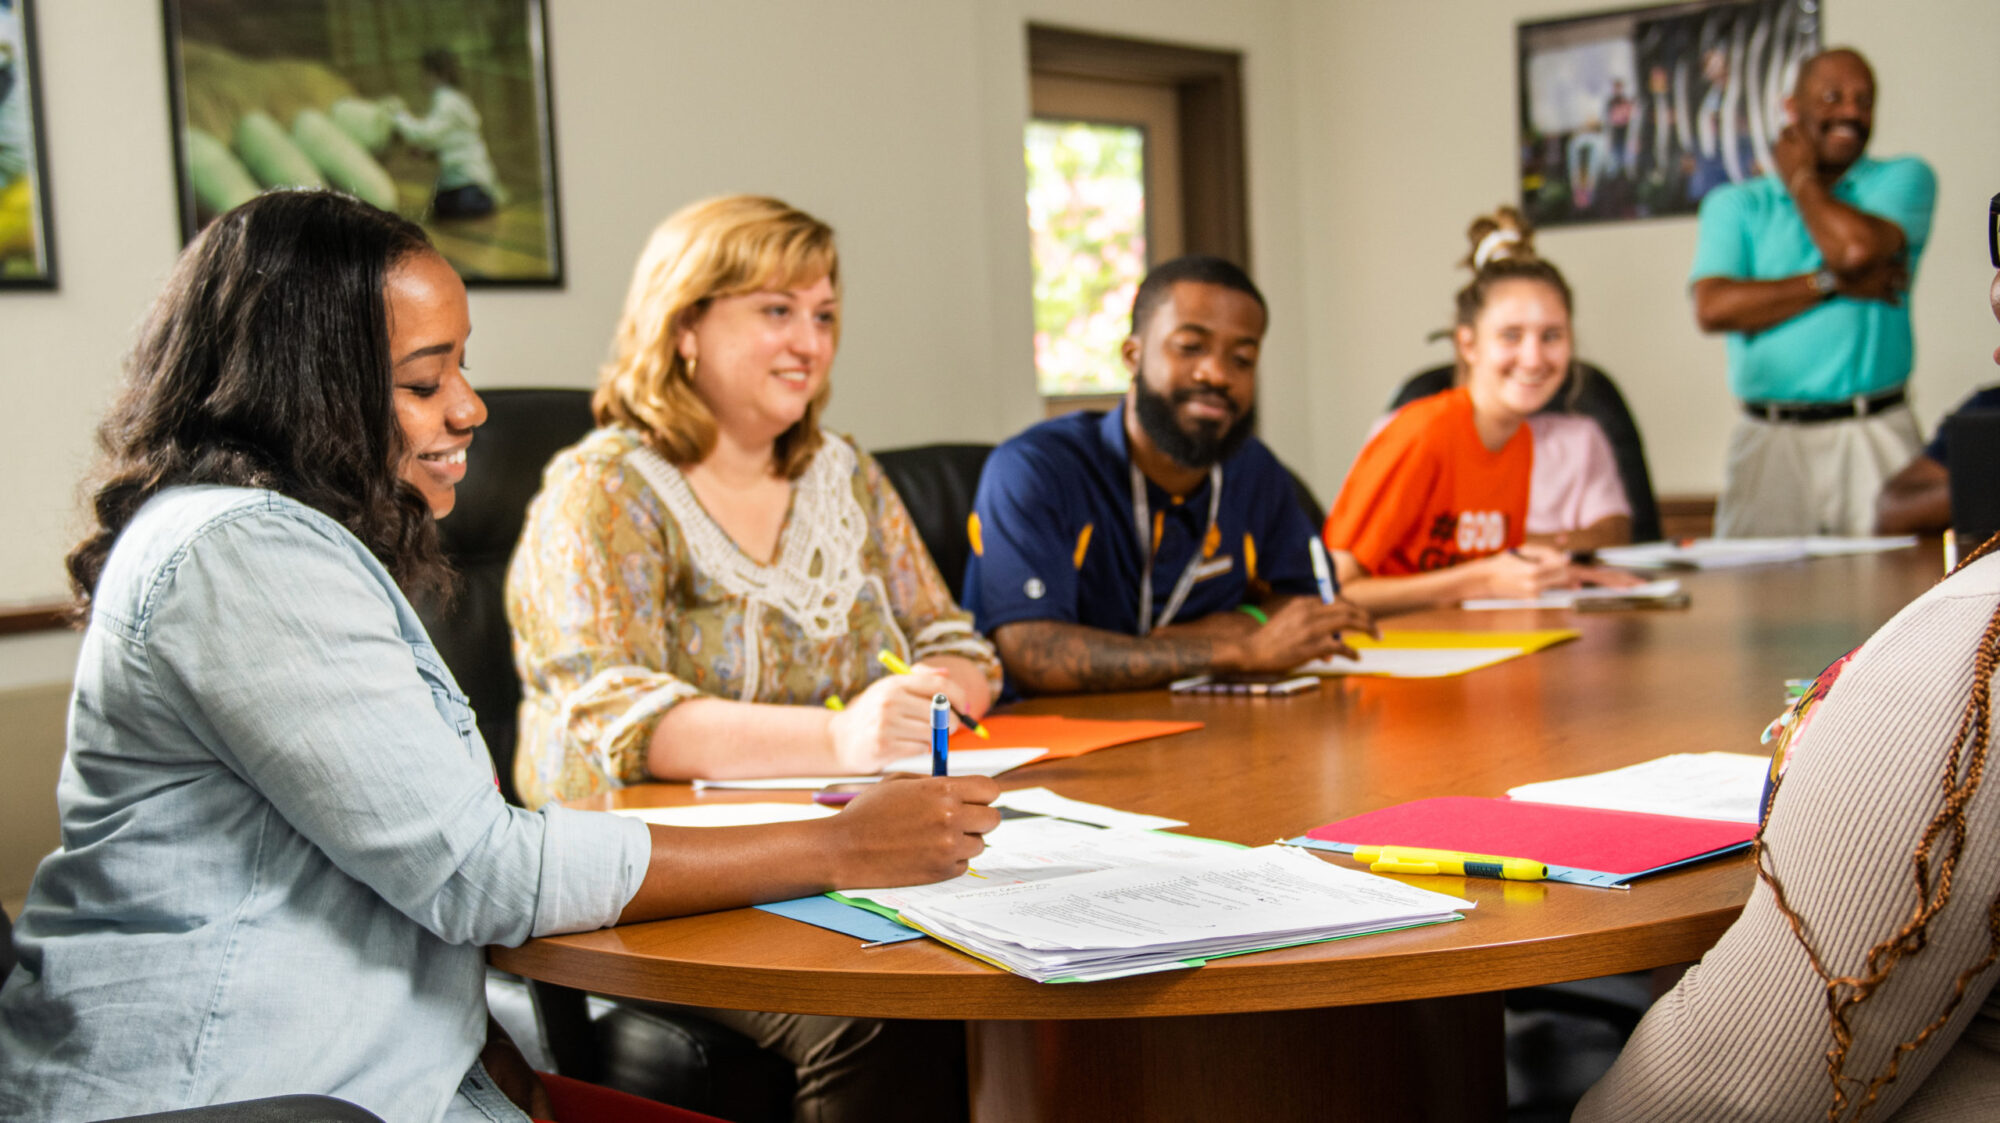 A group of educator and students sitting at a table.